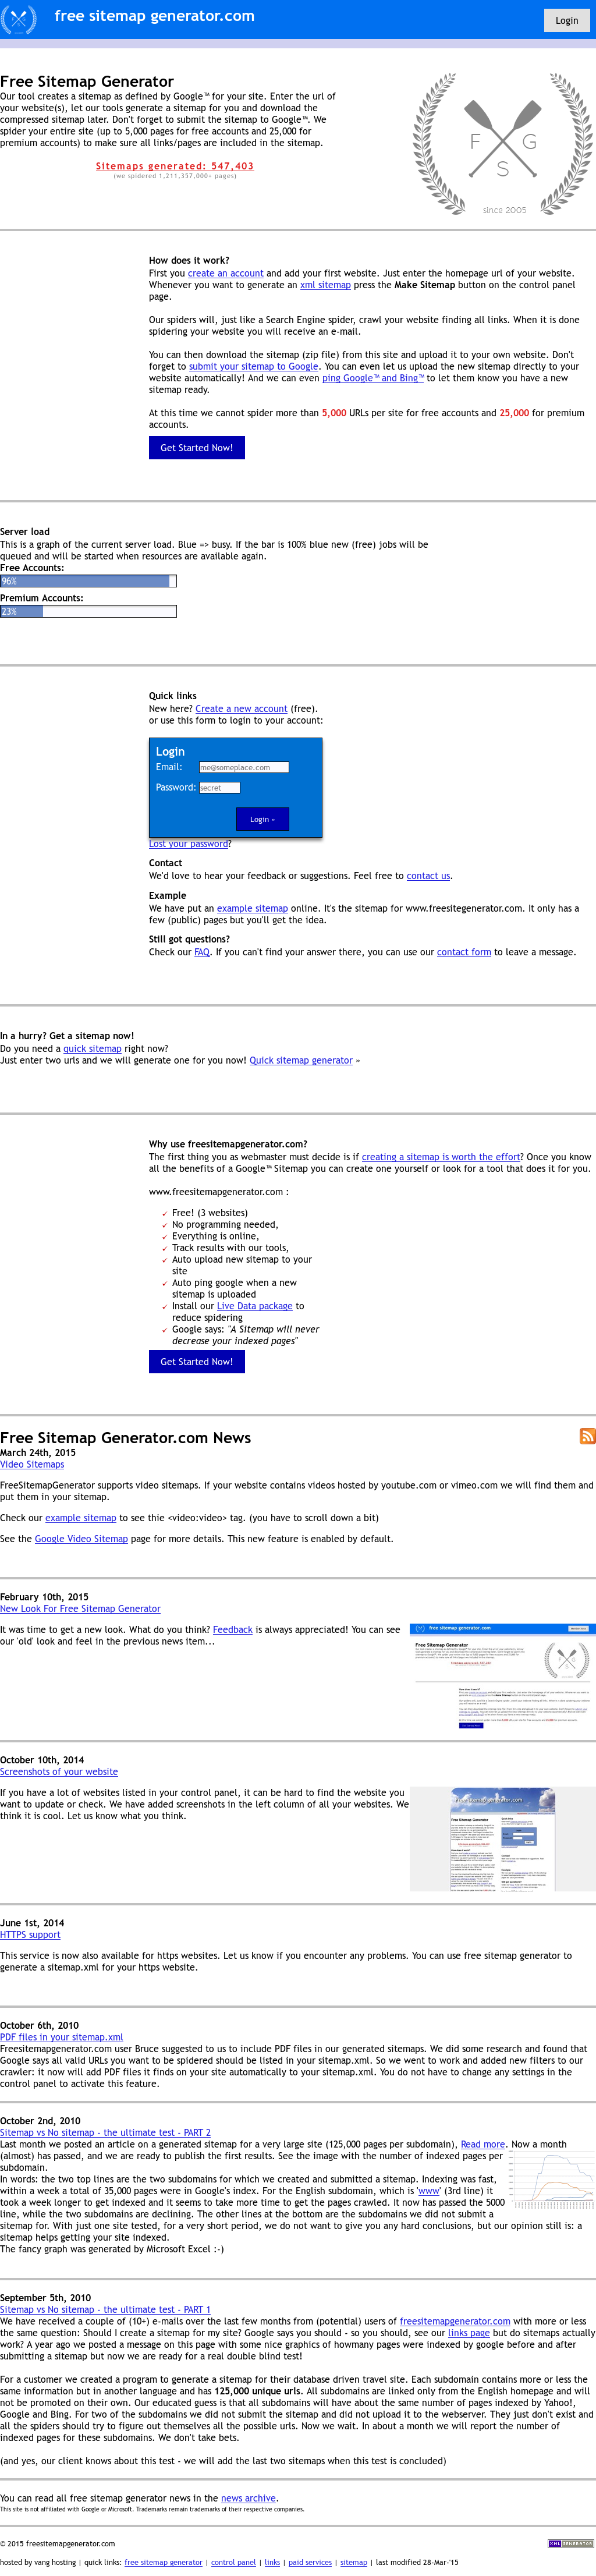 Free Sitemap Generator Competitors, Revenue and Employees - Owler